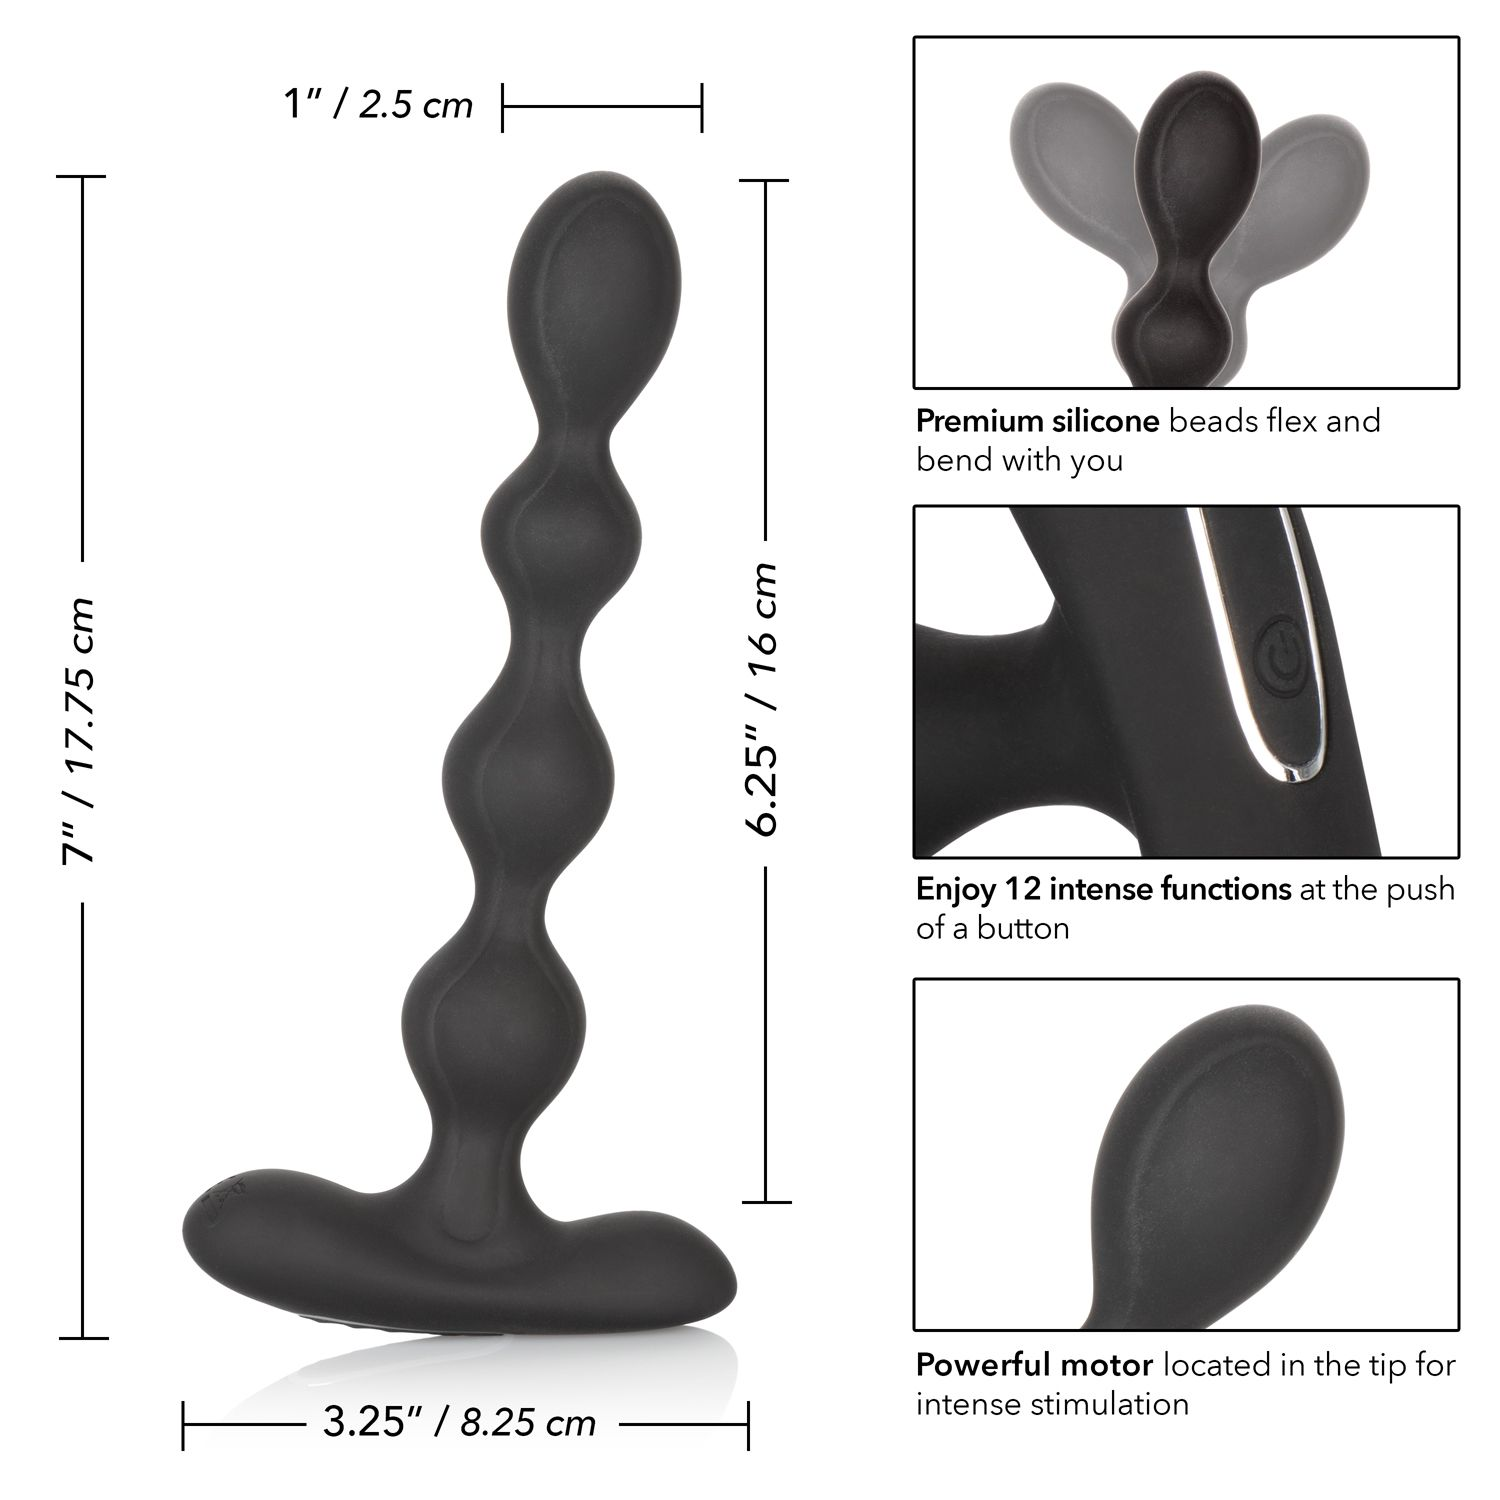 Calexotics Eclipse Rechargeable Vibrating Slender Beads Black SE-0383-10-3 716770091093